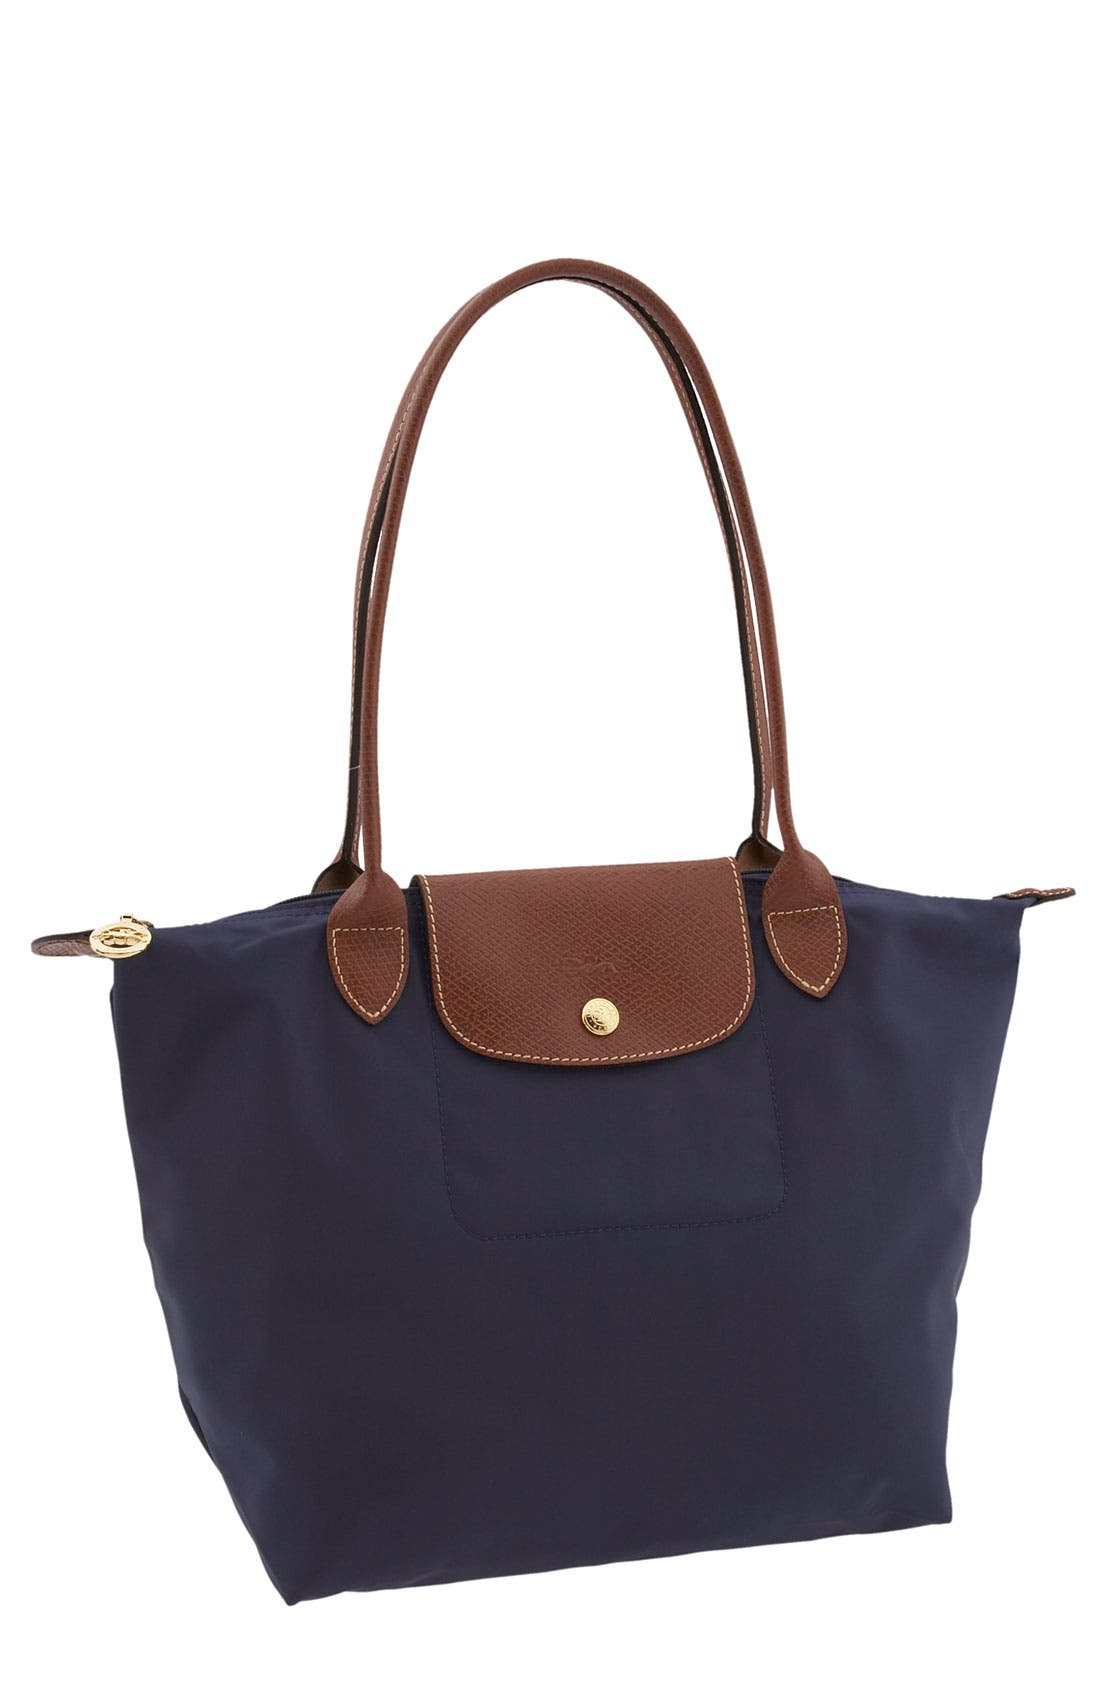 Main Image - Longchamp 'Small Le Pliage' Shoulder Tote